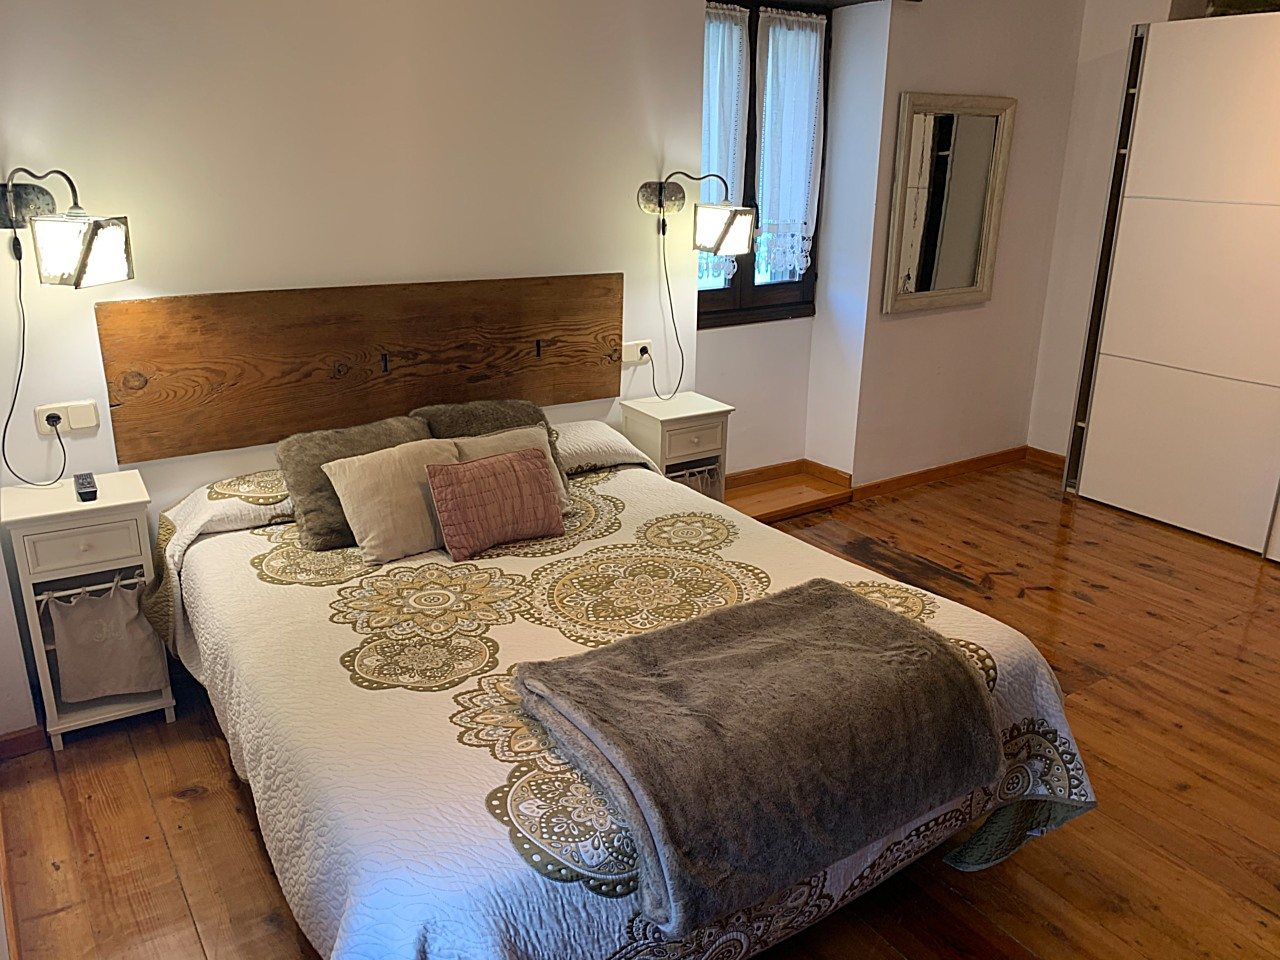 Room number three - The House - Casa Rural Argonz Etxea